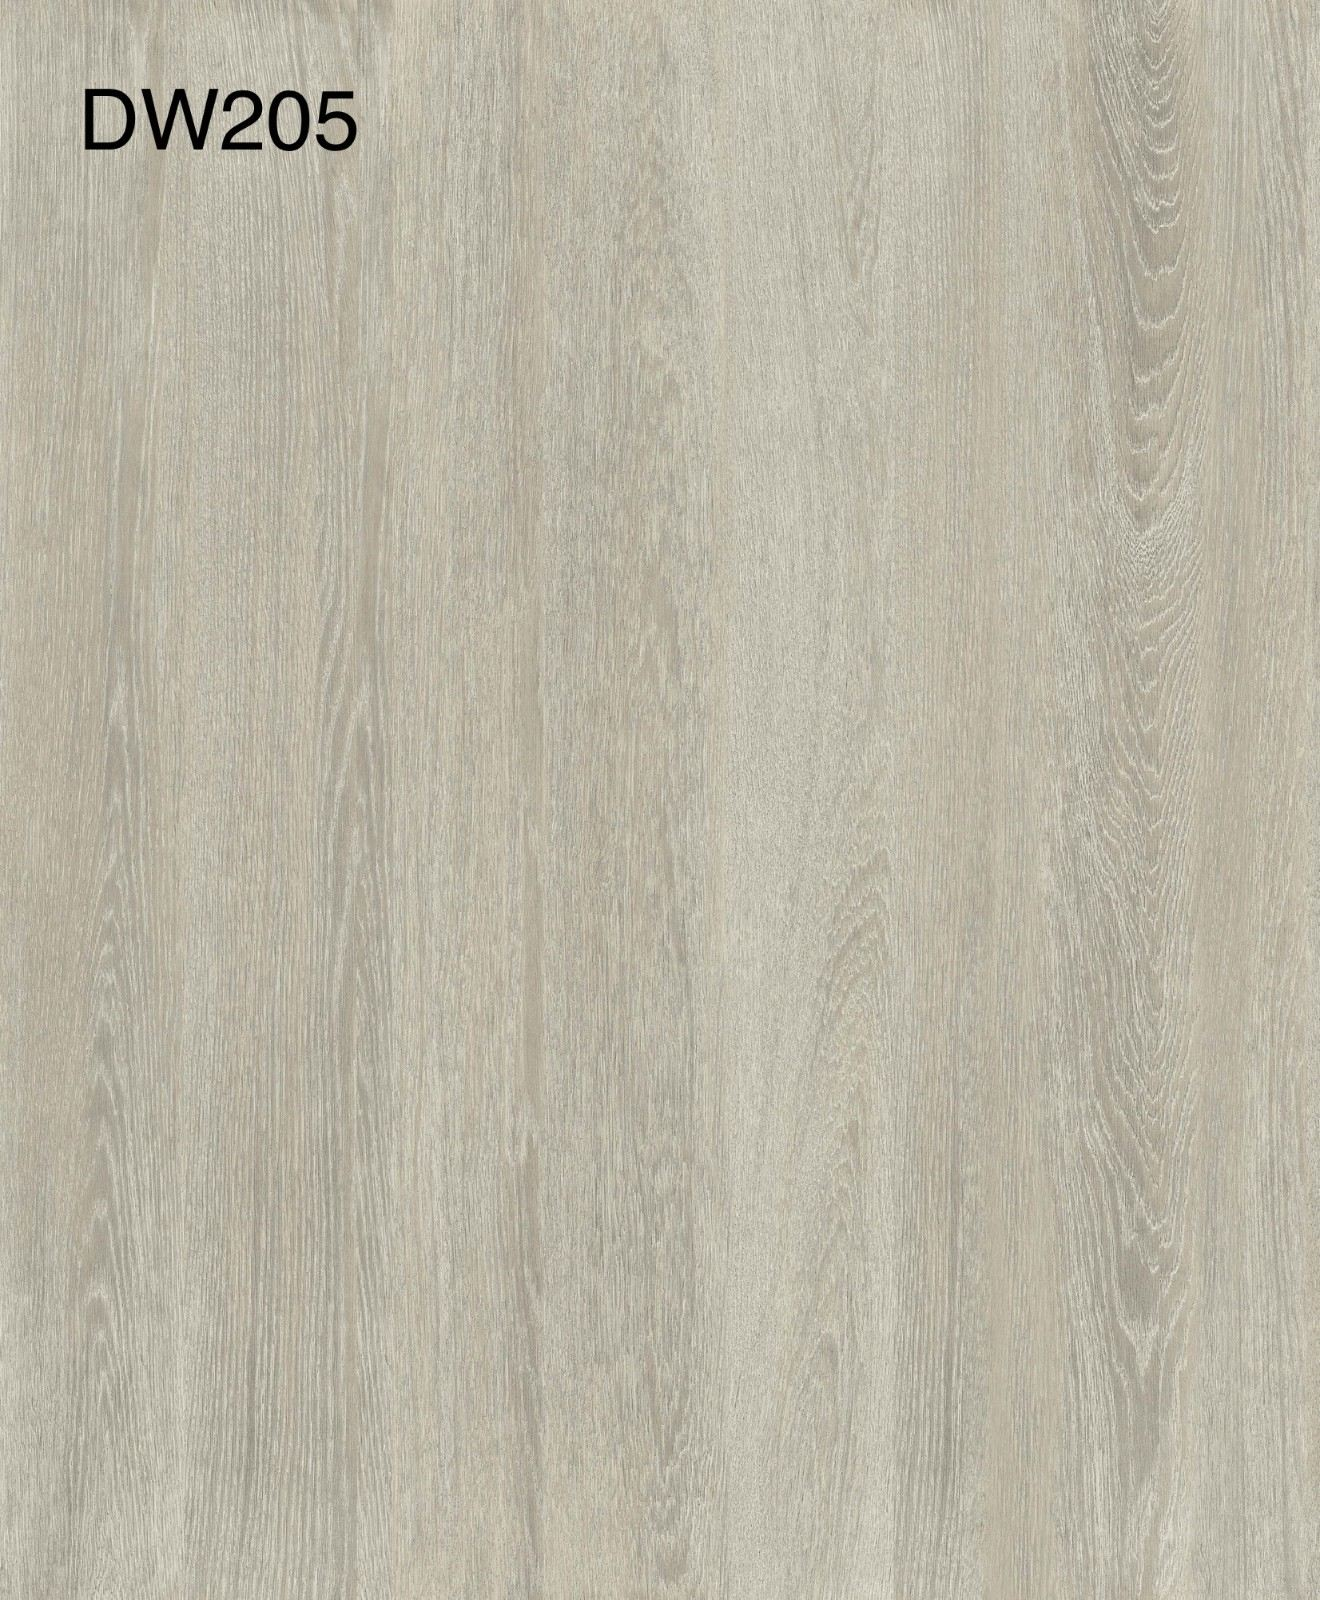 IPVL2-DW205 2MM VINYL TILE​